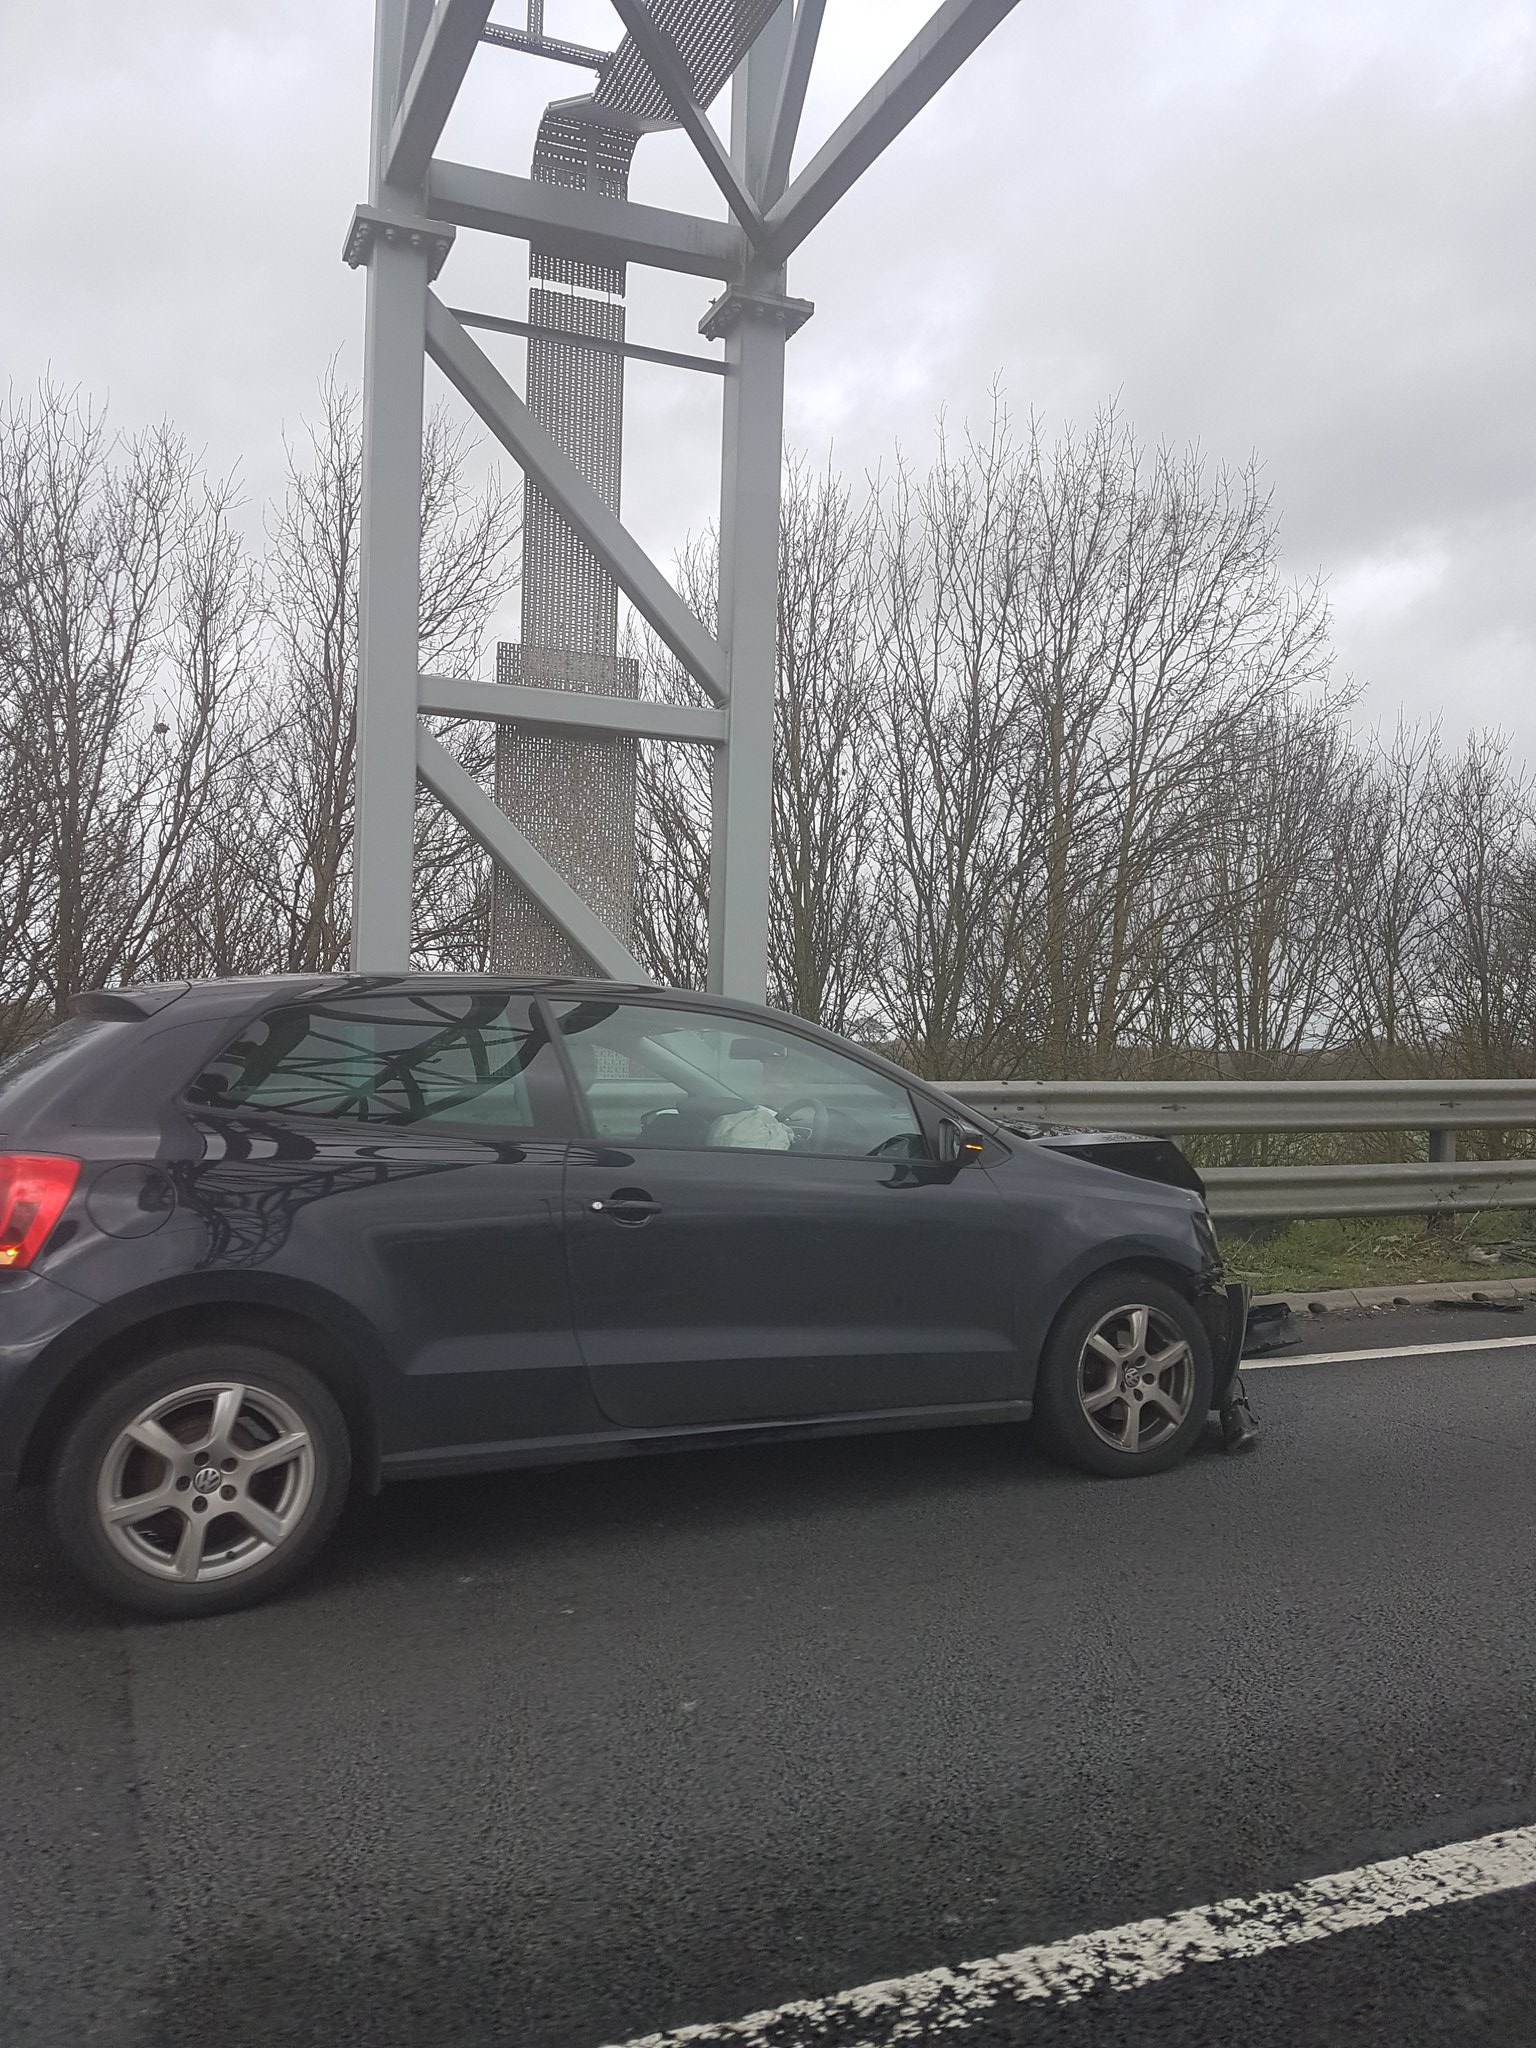 Delays on A34 after crash